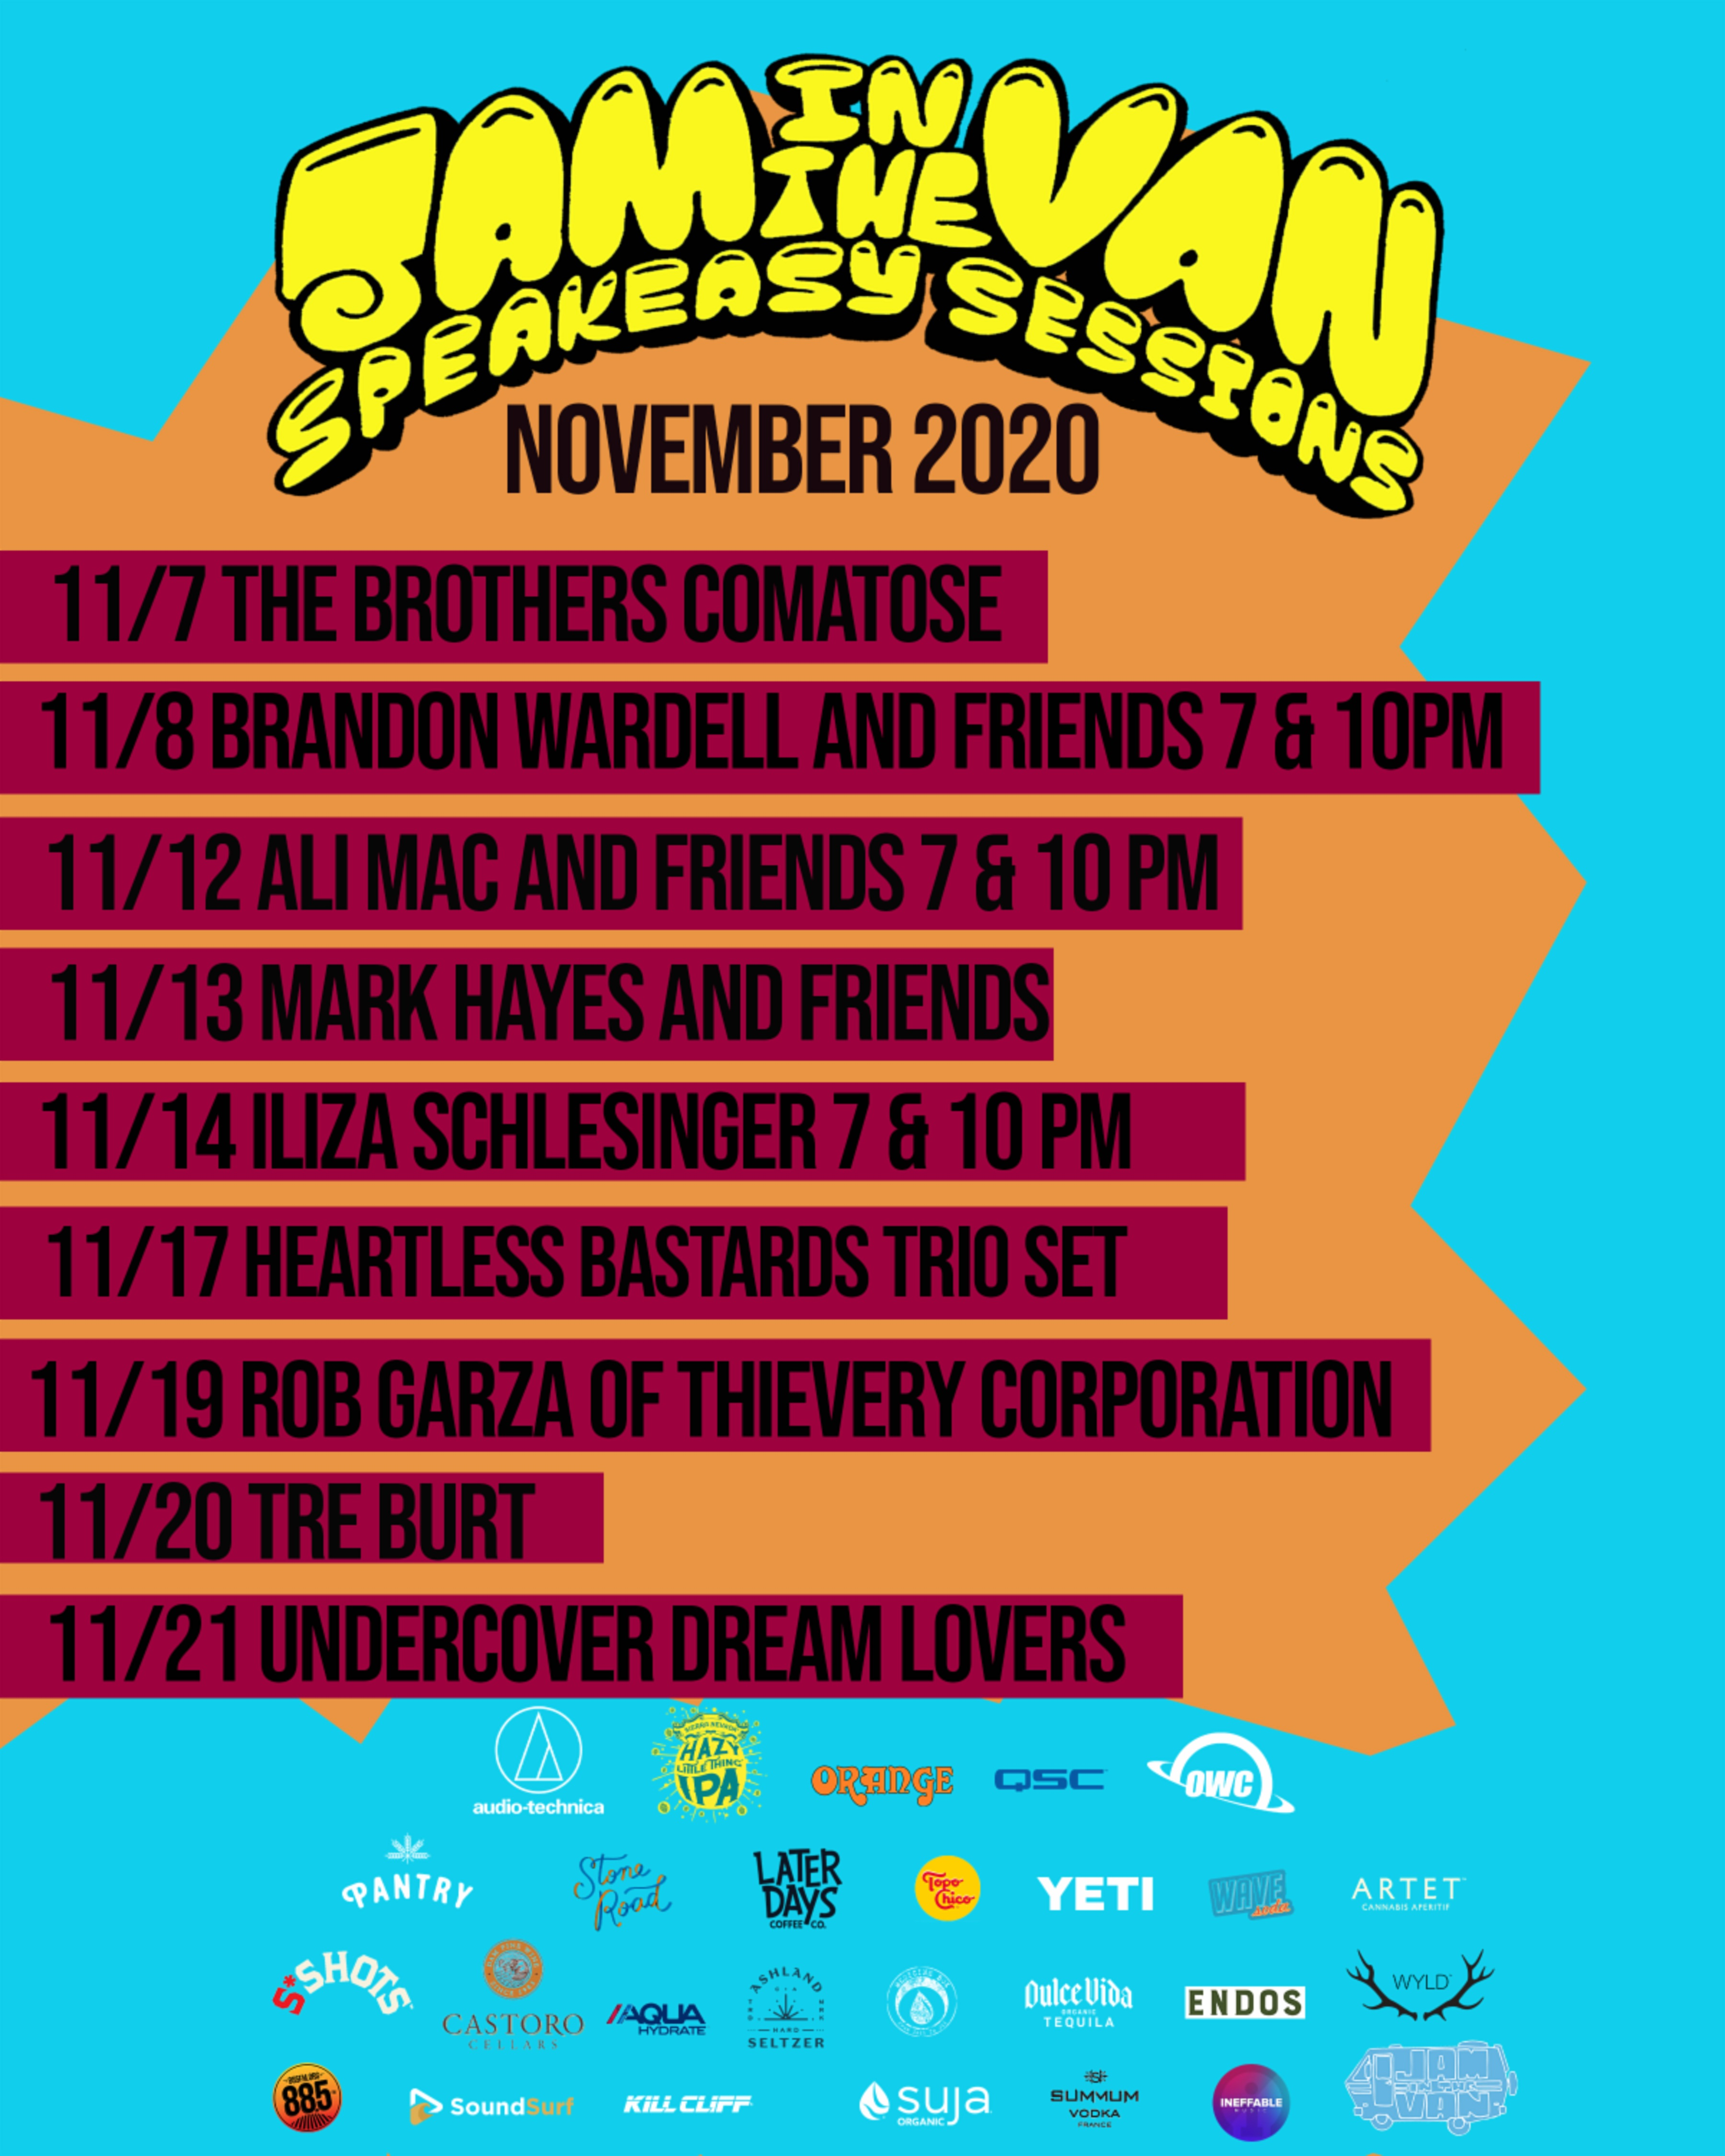 Jam In The Van Announces November Lineup for Speakeasy Sessions